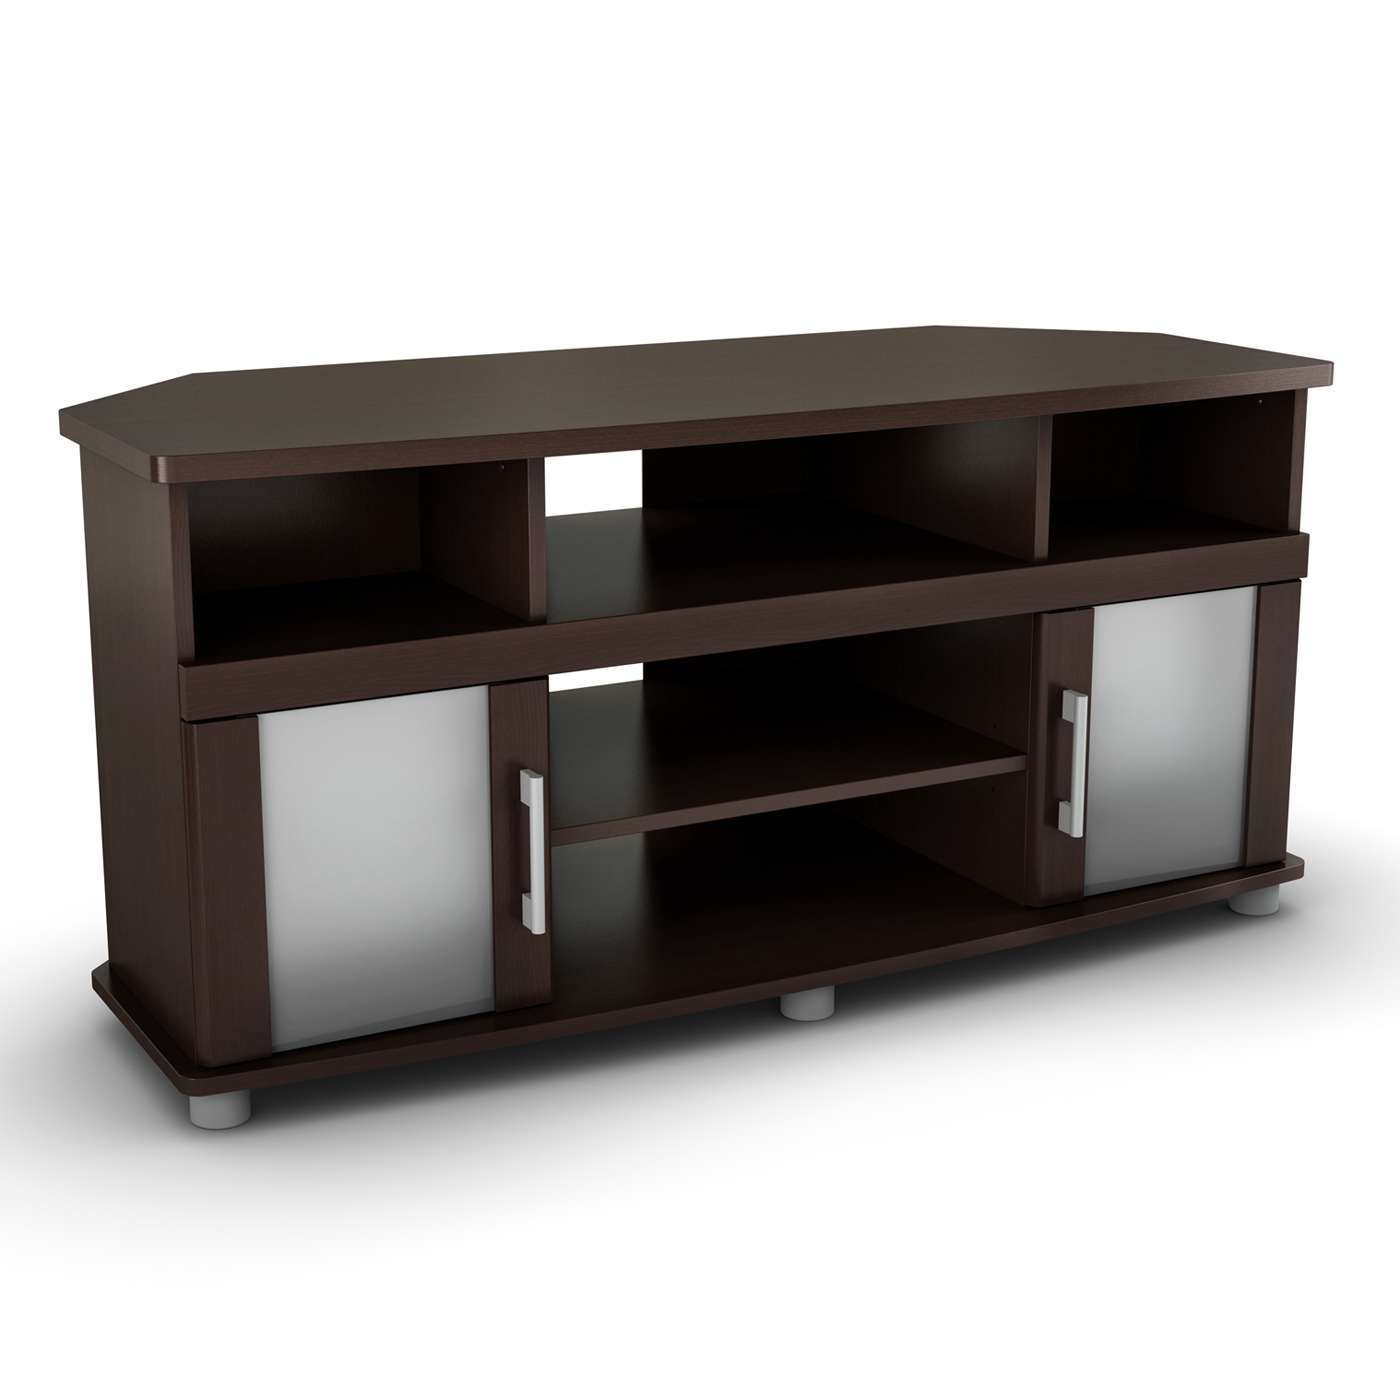 Jordy Nelson Tags : 43 Impressive Tv Unit With Stand Photos Design Intended For Low Corner Tv Stands (View 7 of 20)